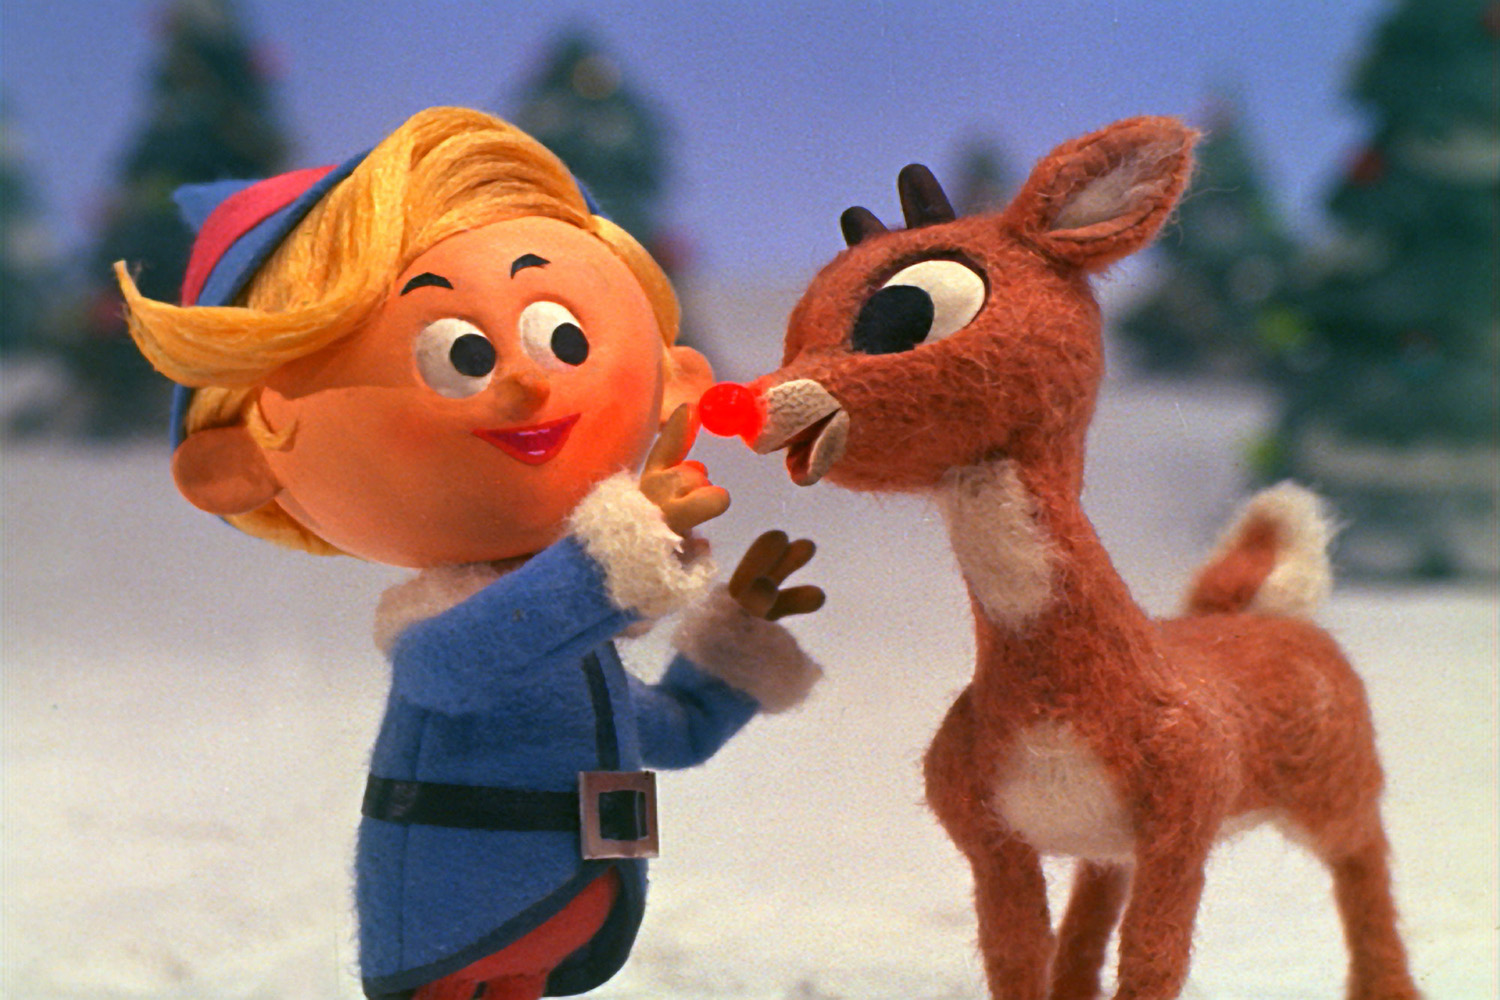 /wp-content/uploads/2015/12/rudolph_the_red_nosed_reindeer_853015.jpg